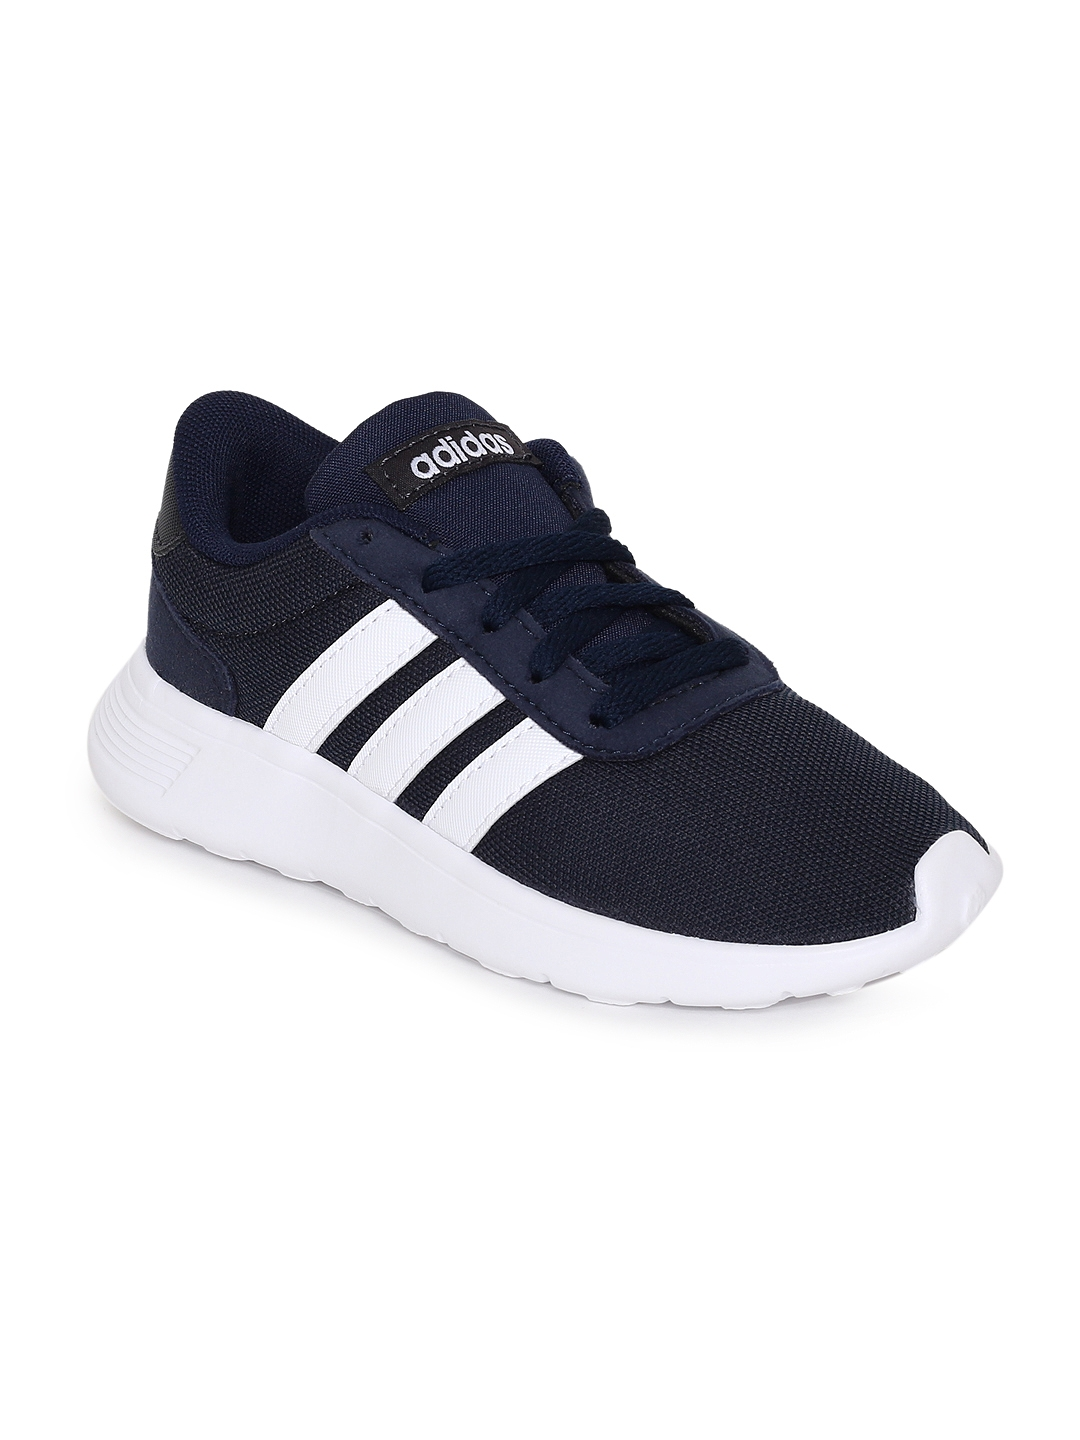 best sneakers 70fb8 b1dfd ADIDAS Kids Navy Blue Solid Lite Racer K Running Shoes